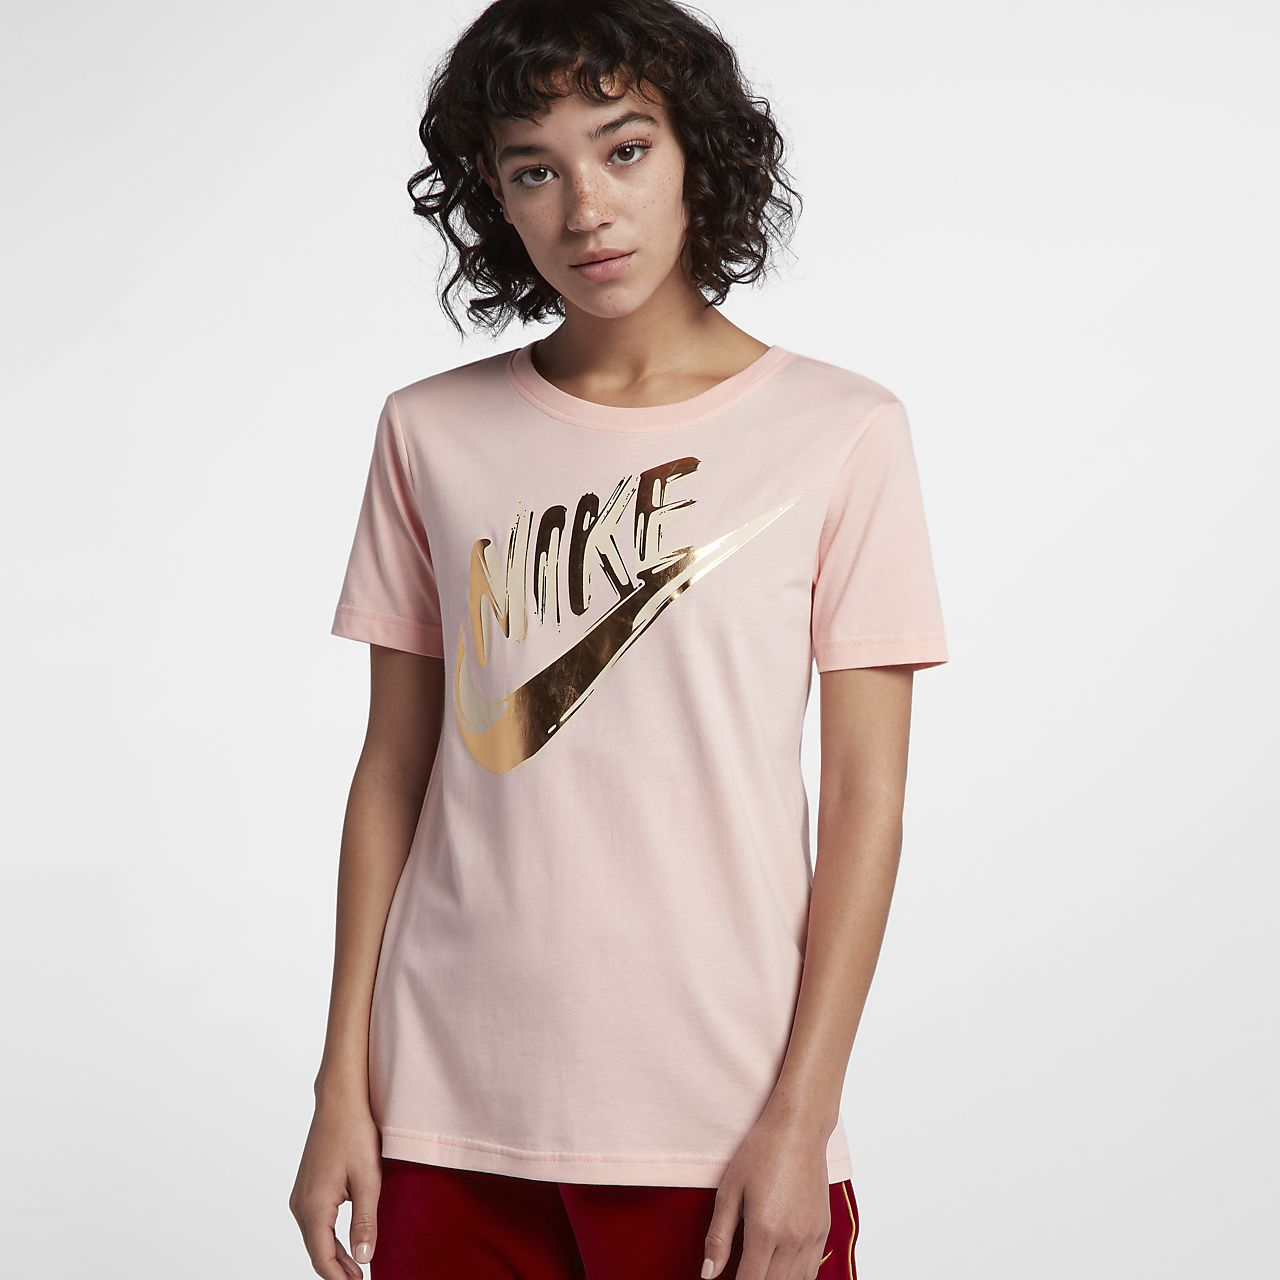 Nike Sportswear Women's Metallic Short-Sleeve Top